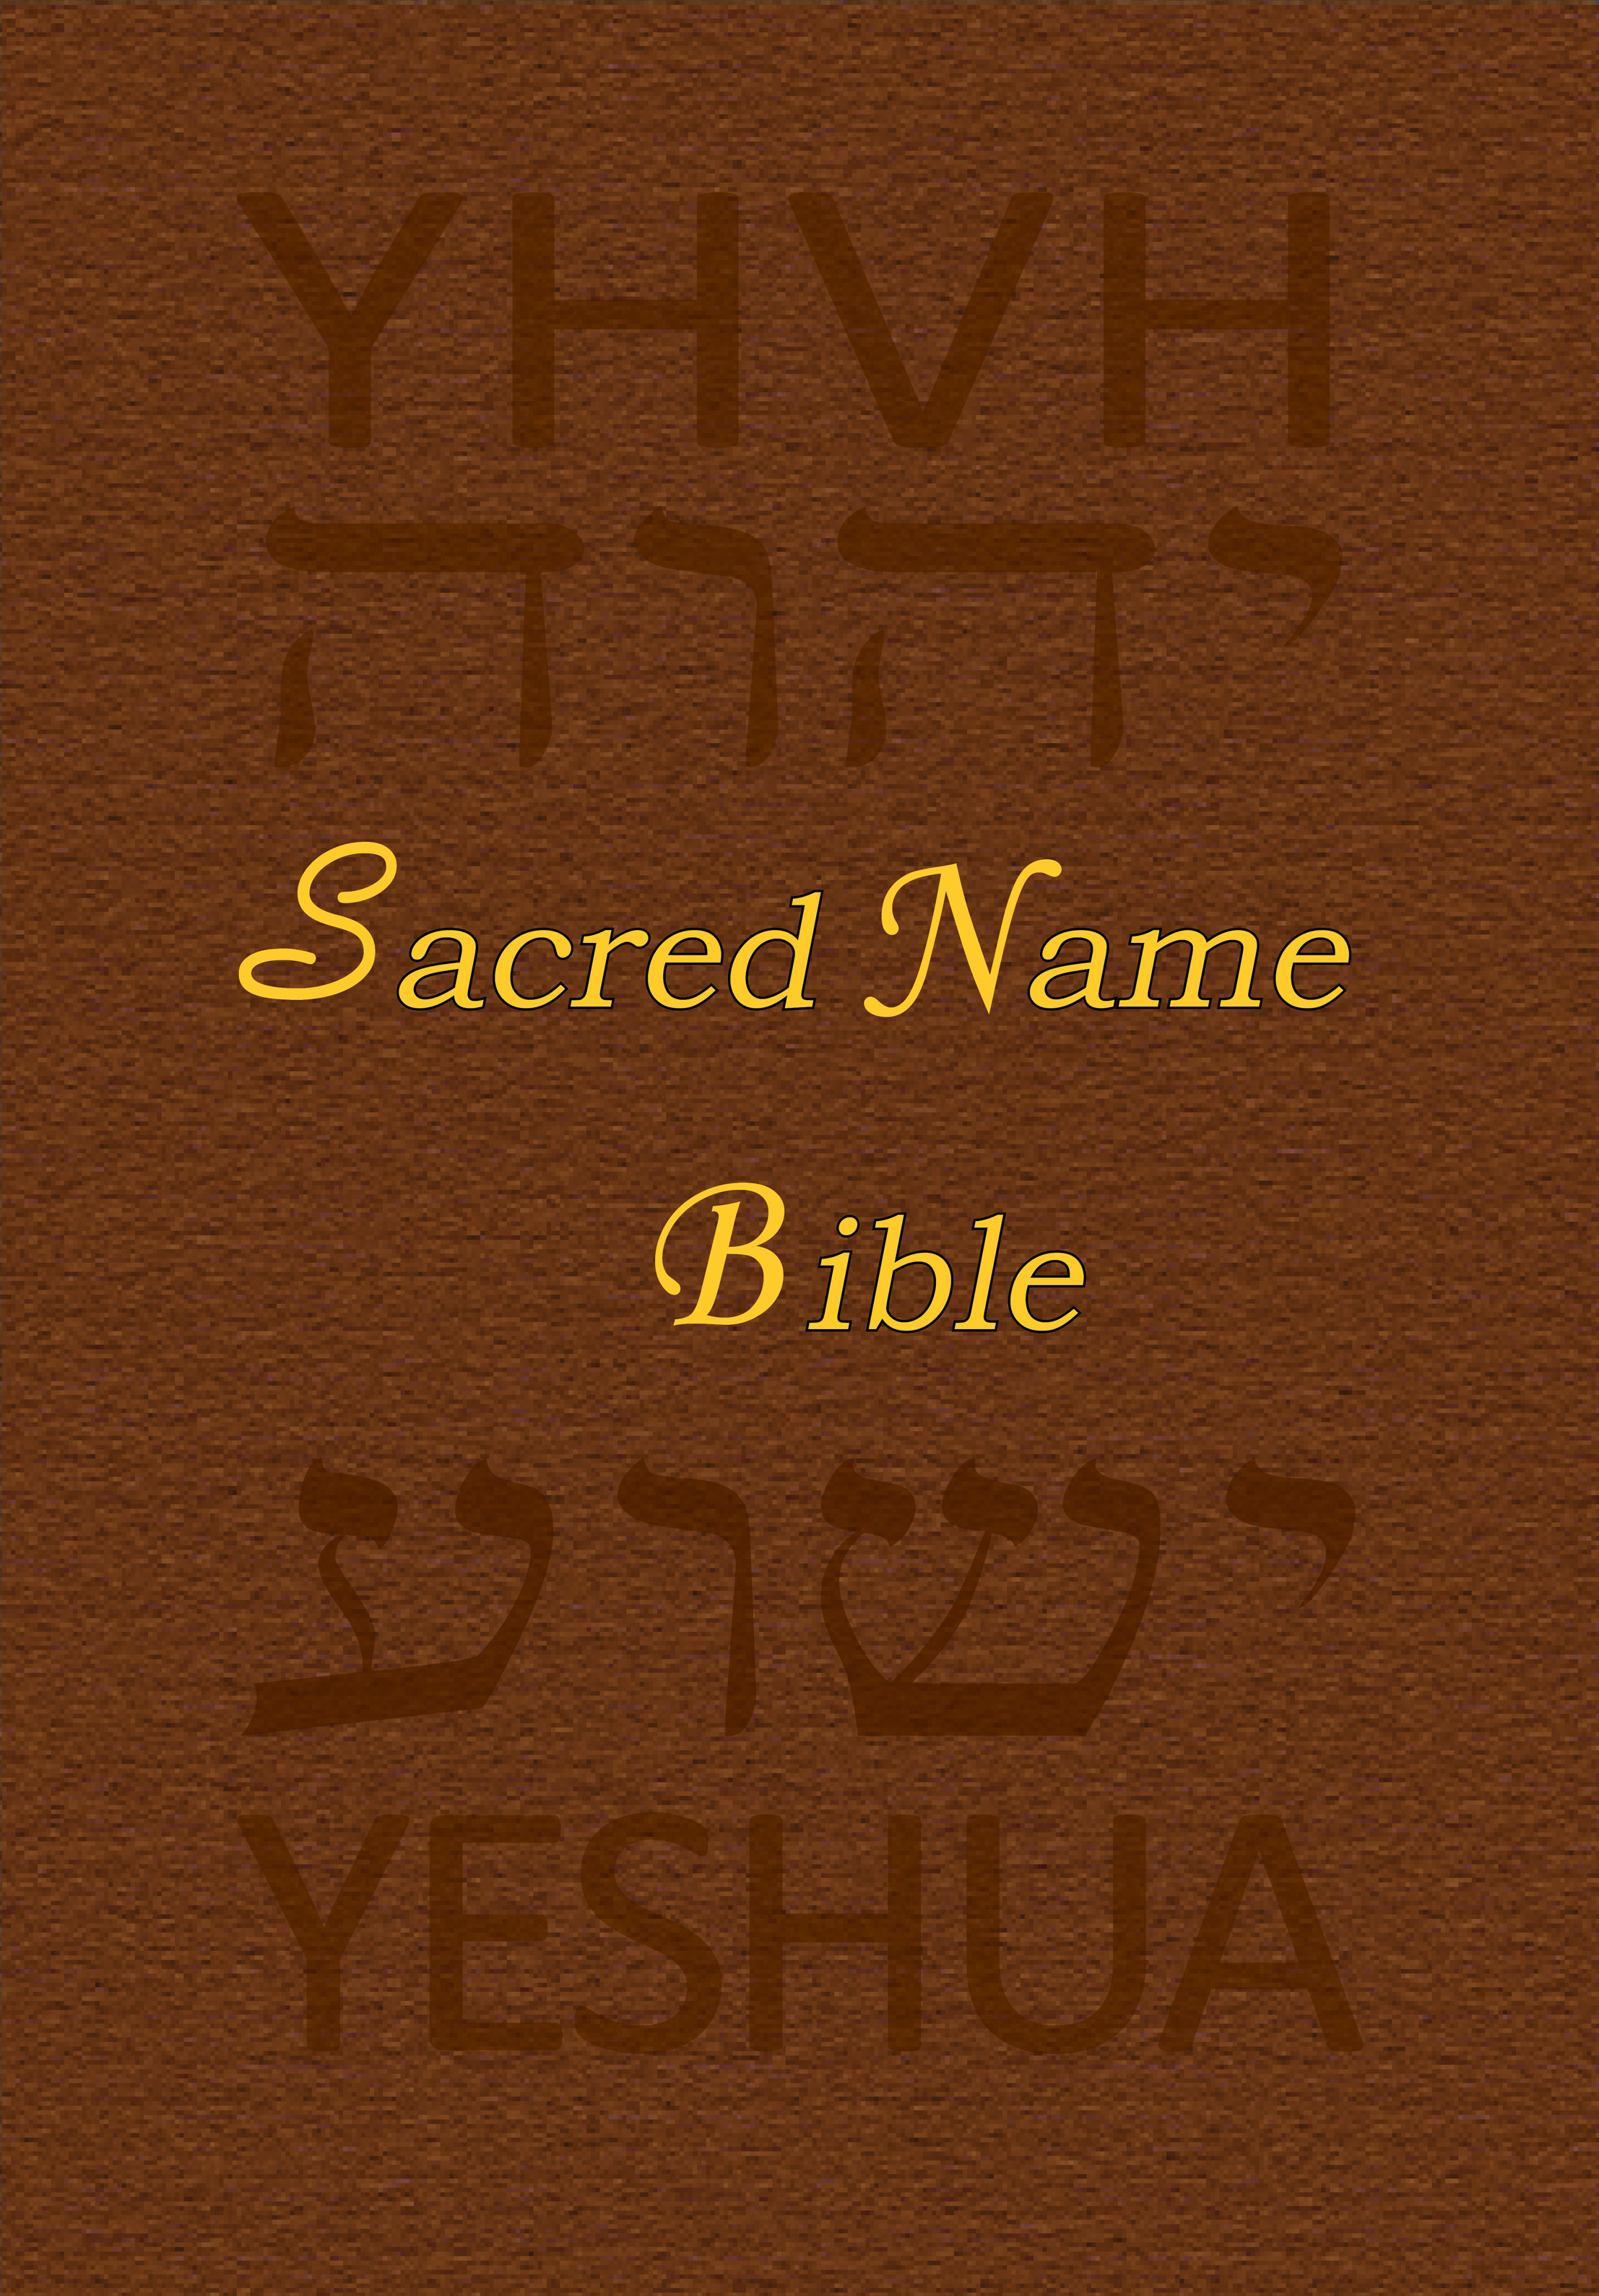 Sacred Name Bible YHVH Yeshua First Old Testament KJV E Book Pub